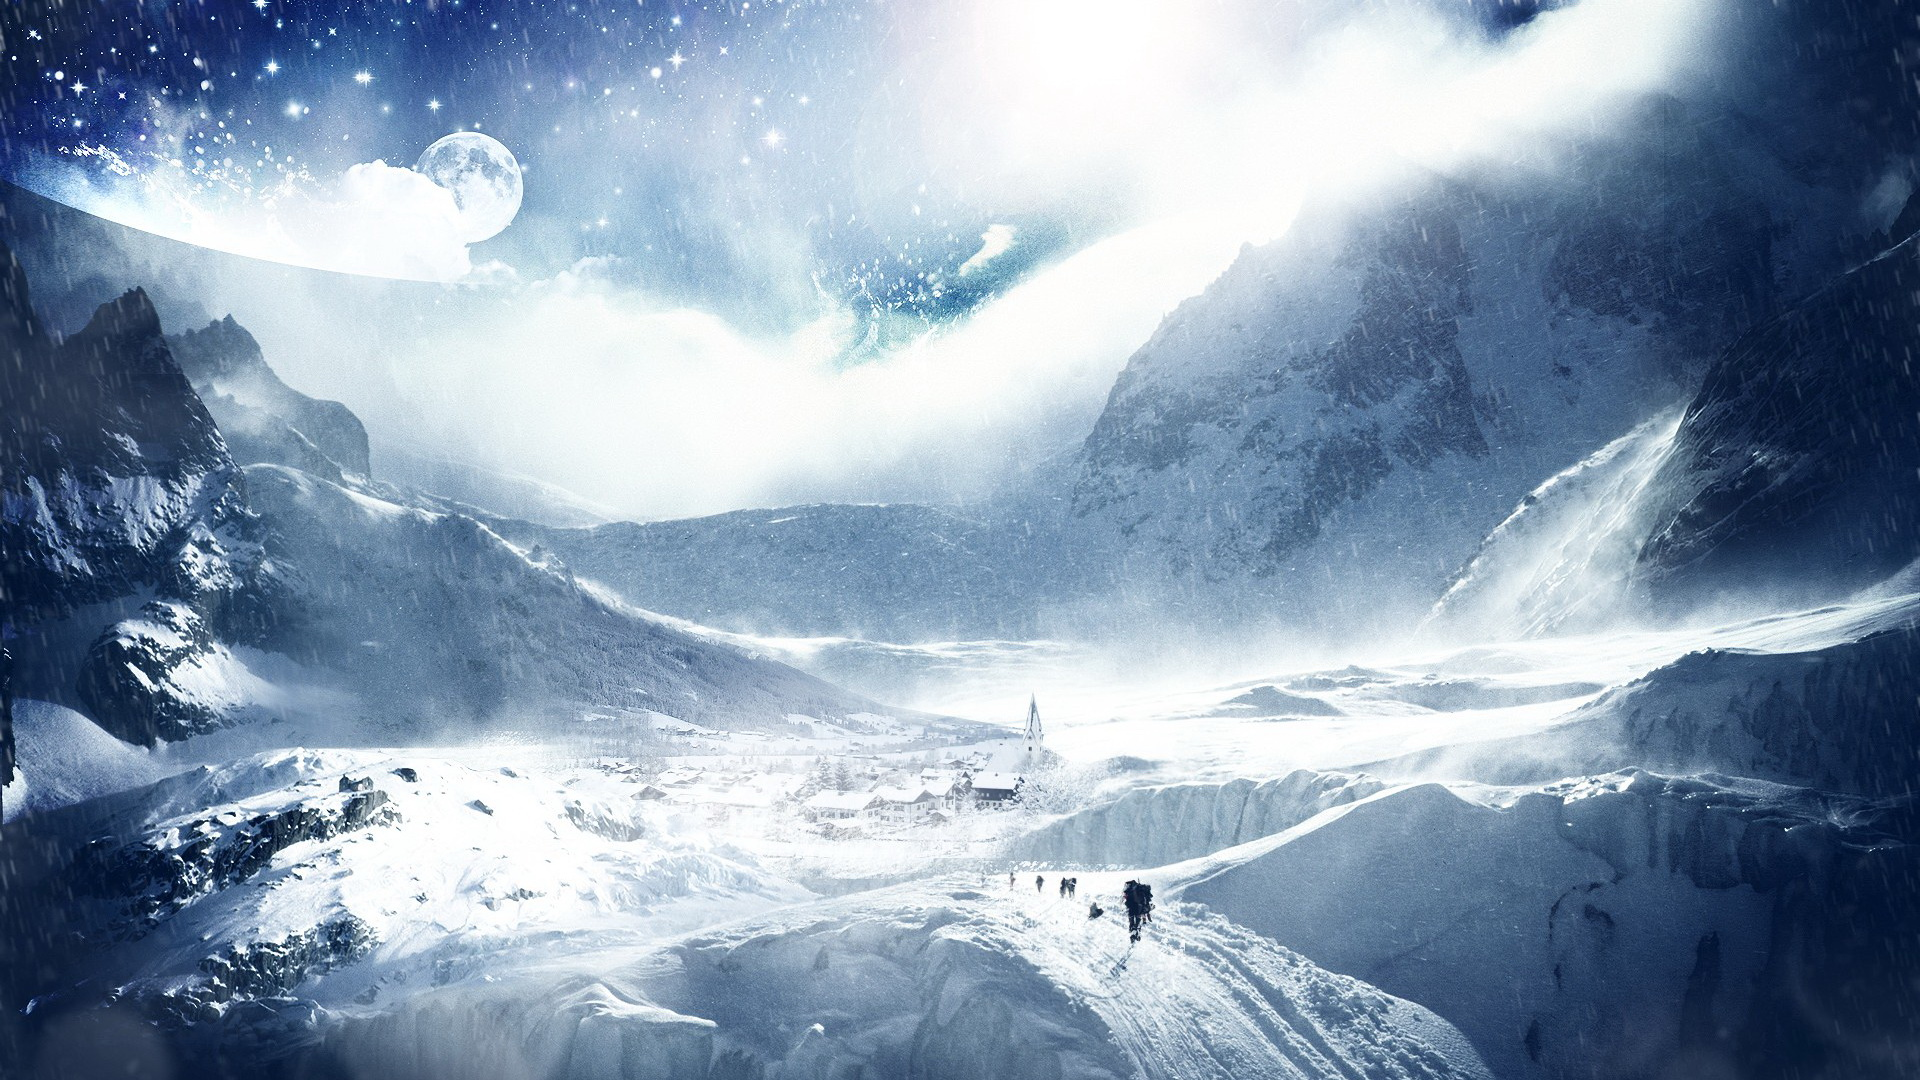 click to free download the wallpaper--Free Download Natural Scenery Picture - A Full Eye of Snow, Climbers in Bags, Have to Get to the Top 1920X1080 free wallpaper download